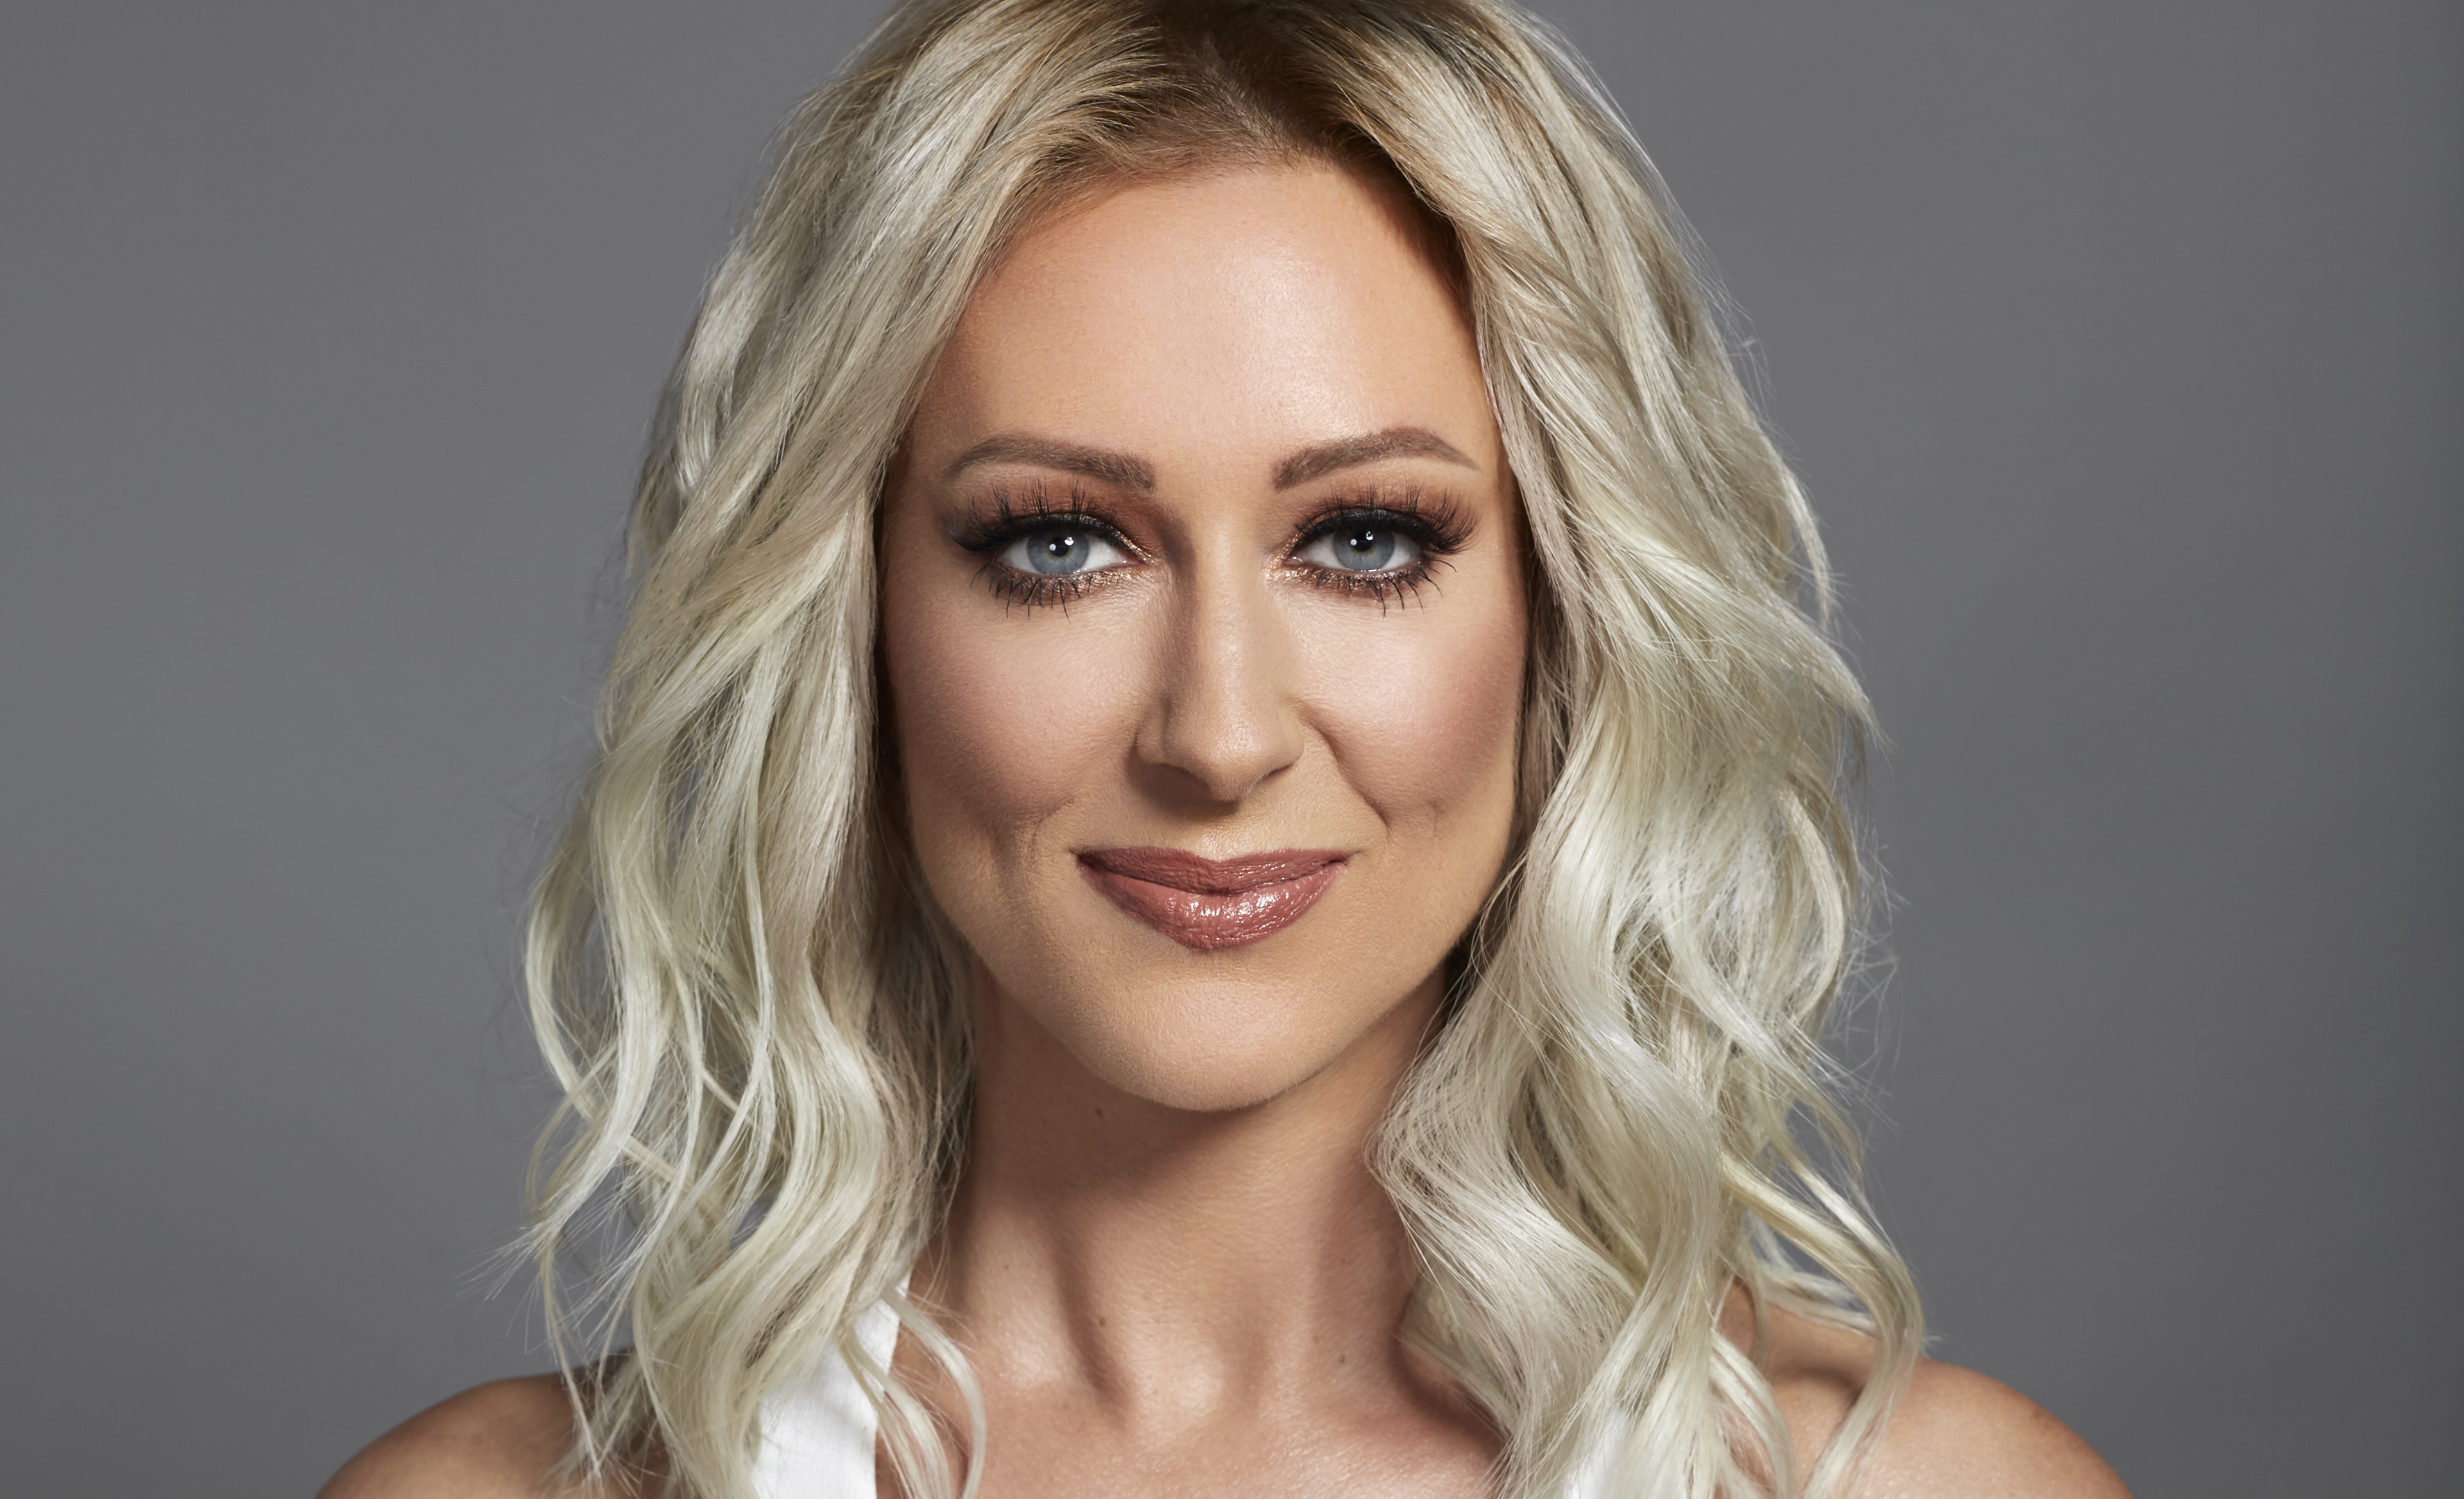 Stepping out: Strictly star Faye Tozer on going it alone